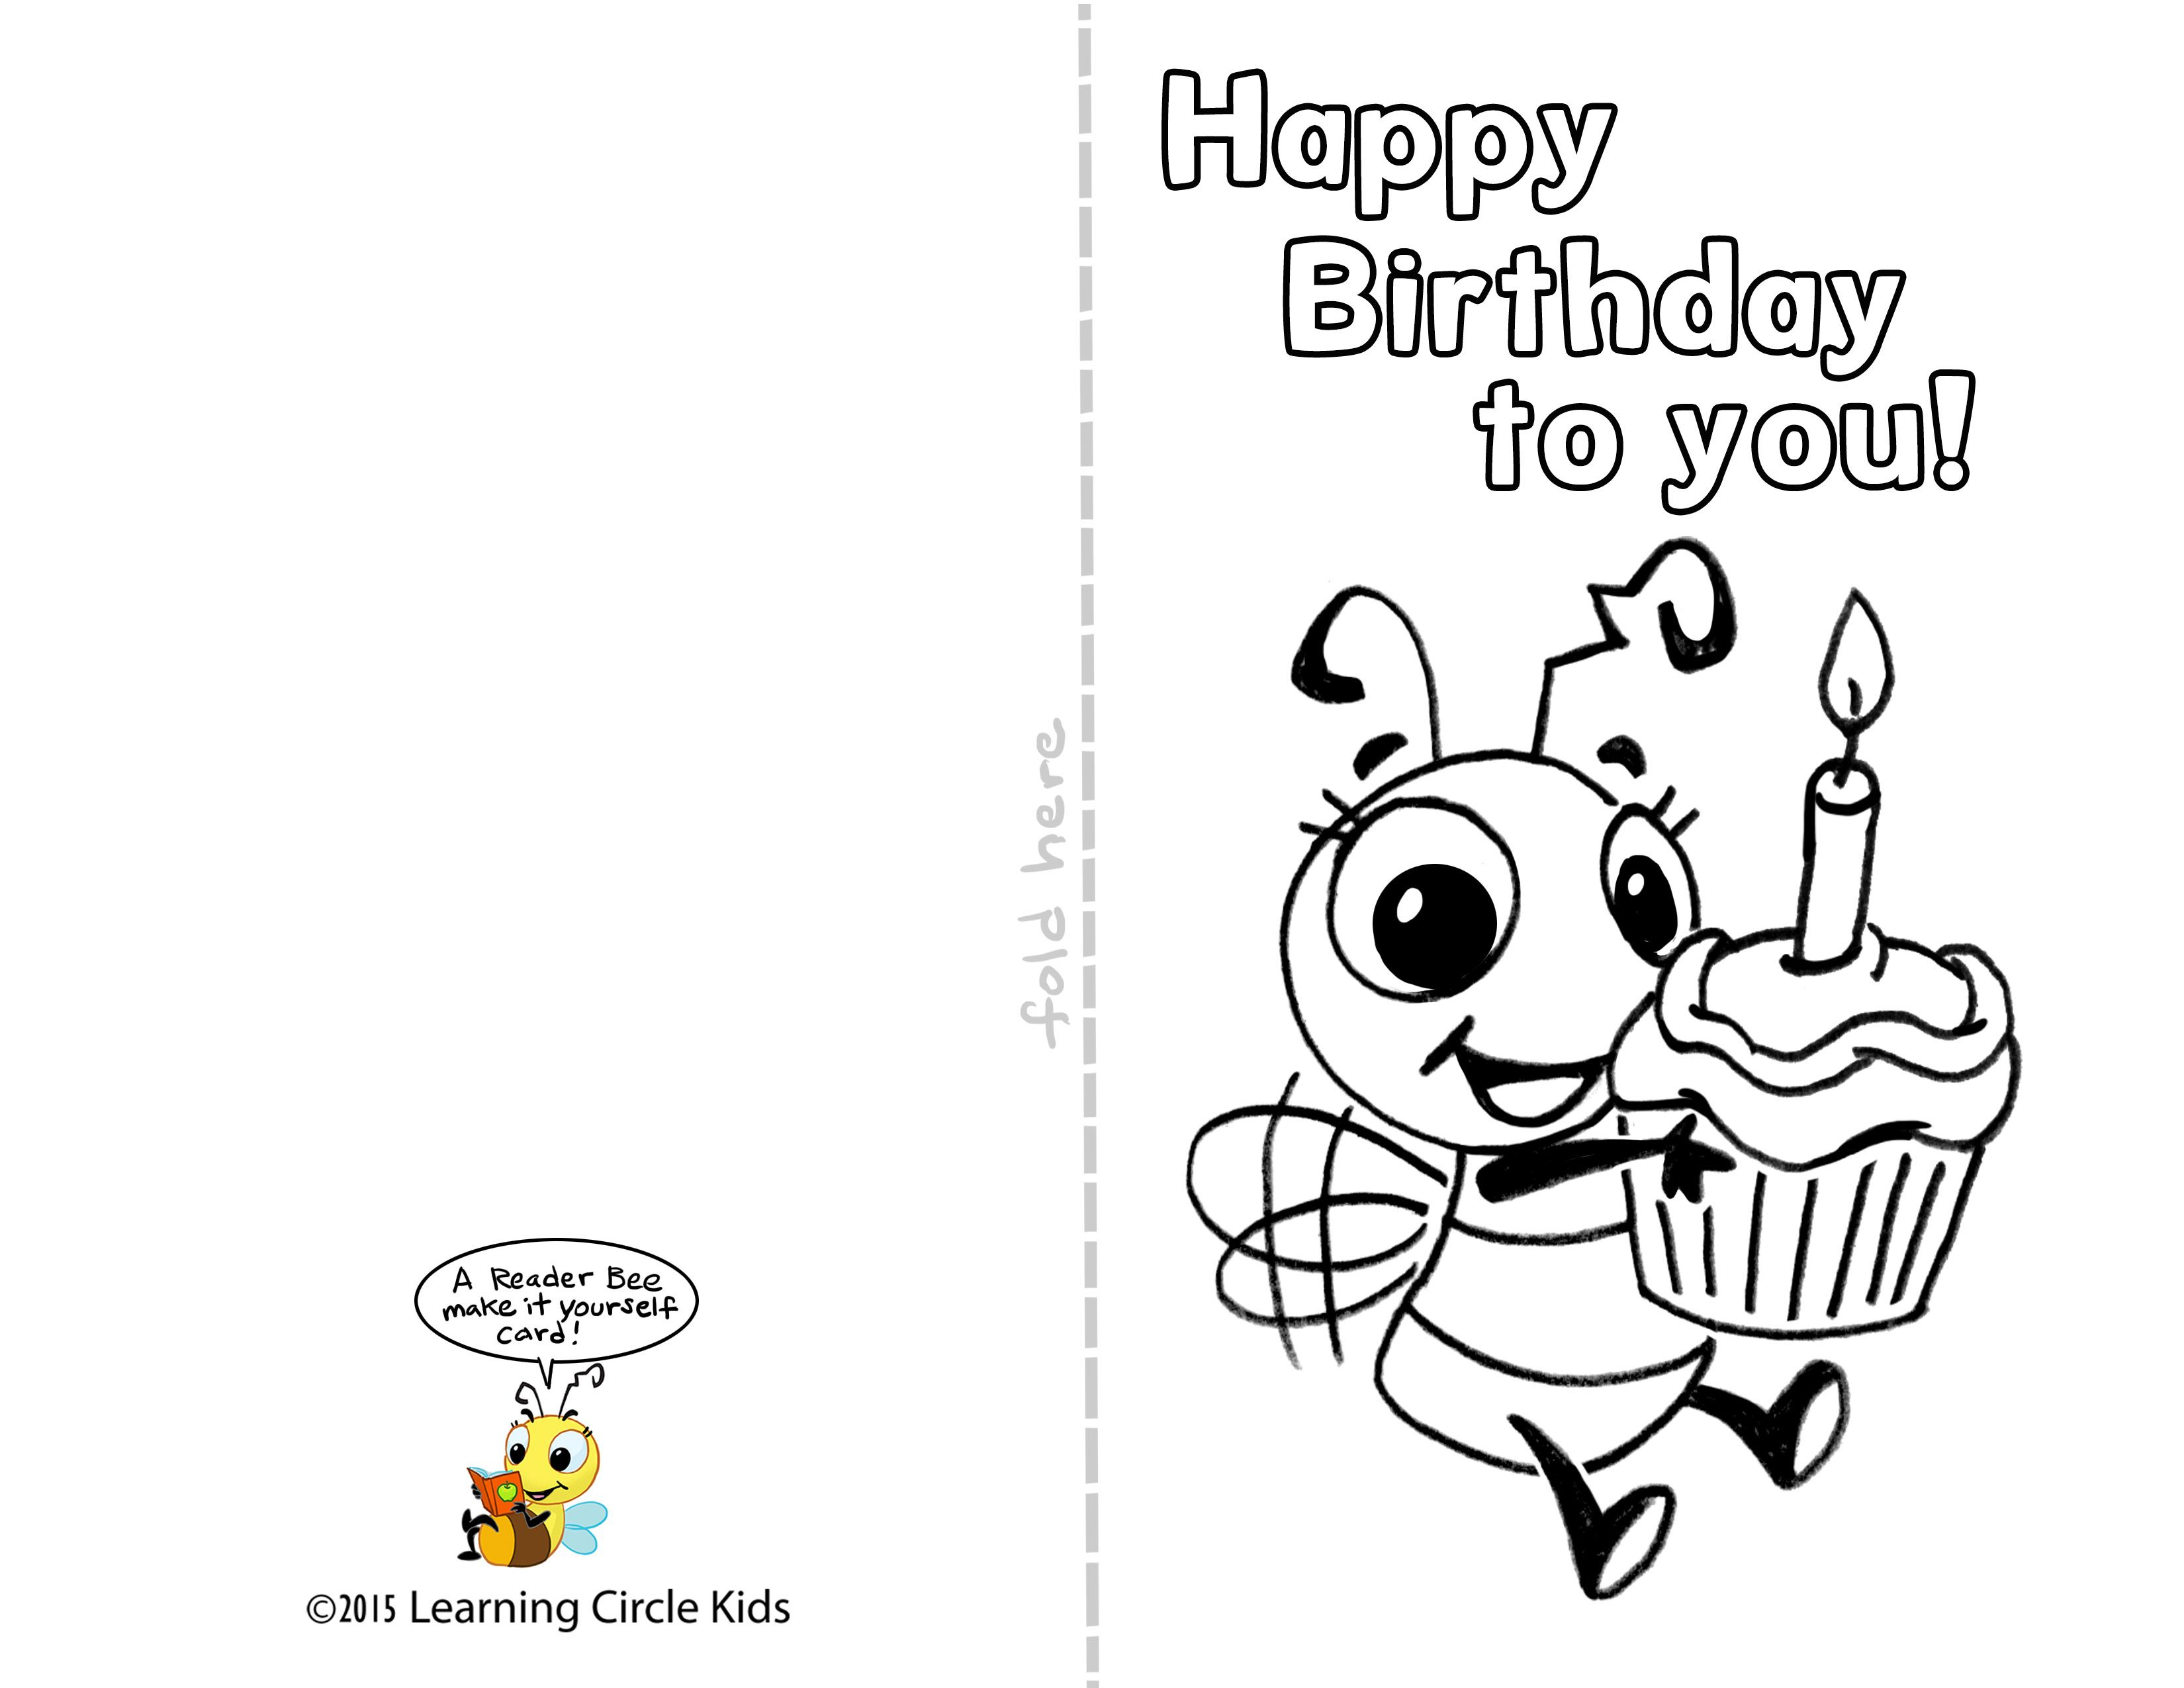 Printable Birthday Cards For Kids Cardss